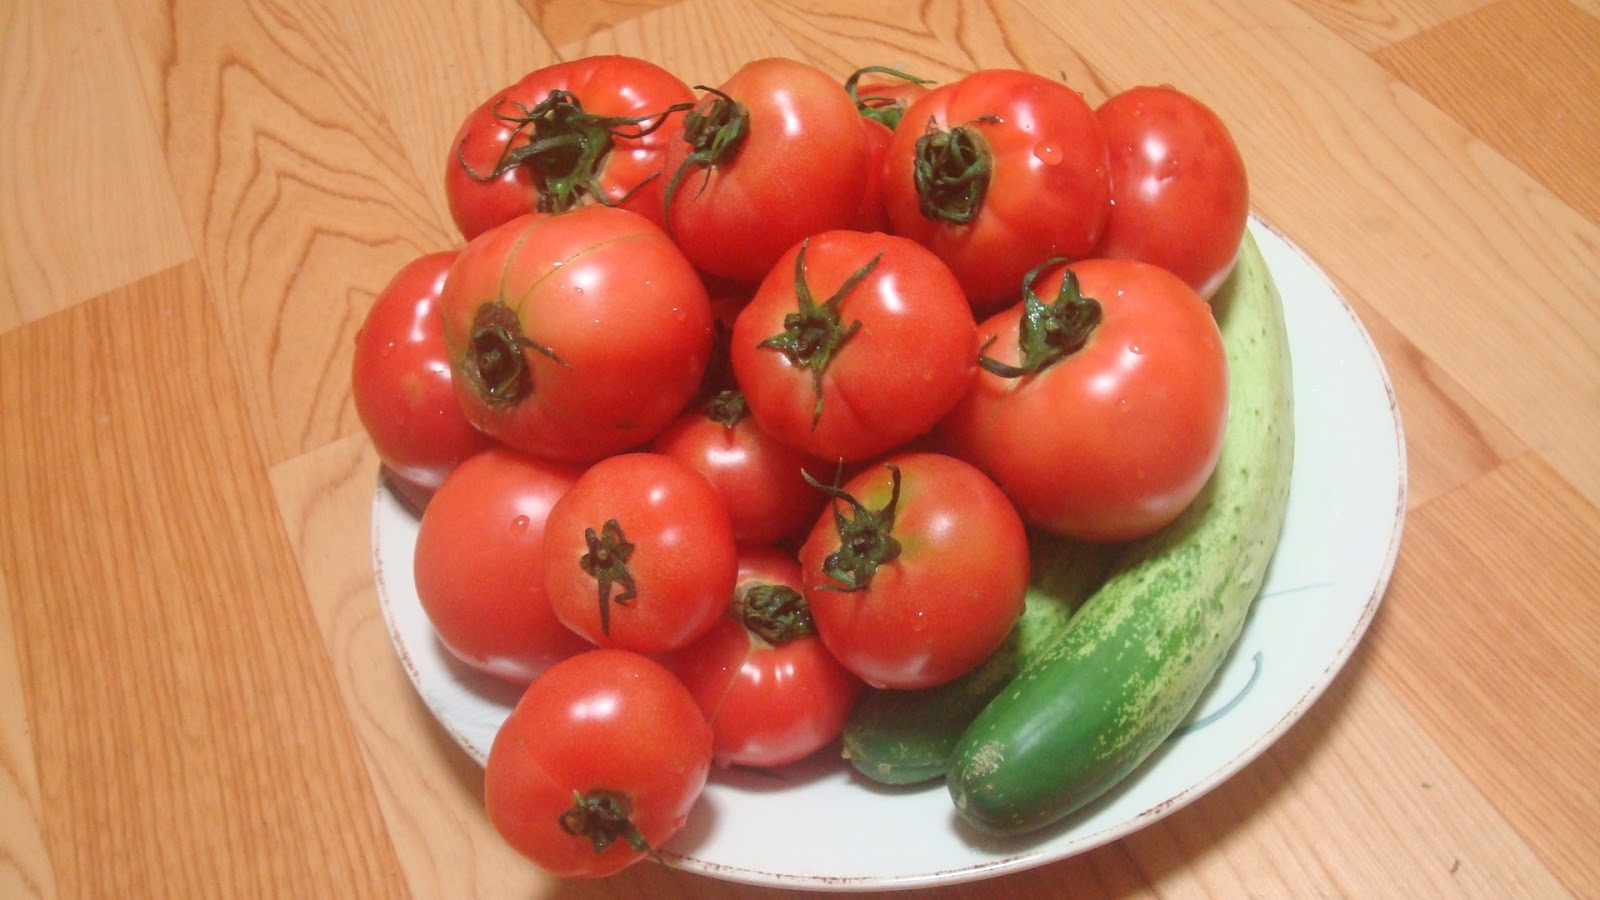 Phytochemical Analysis Of Selected Tomato Product